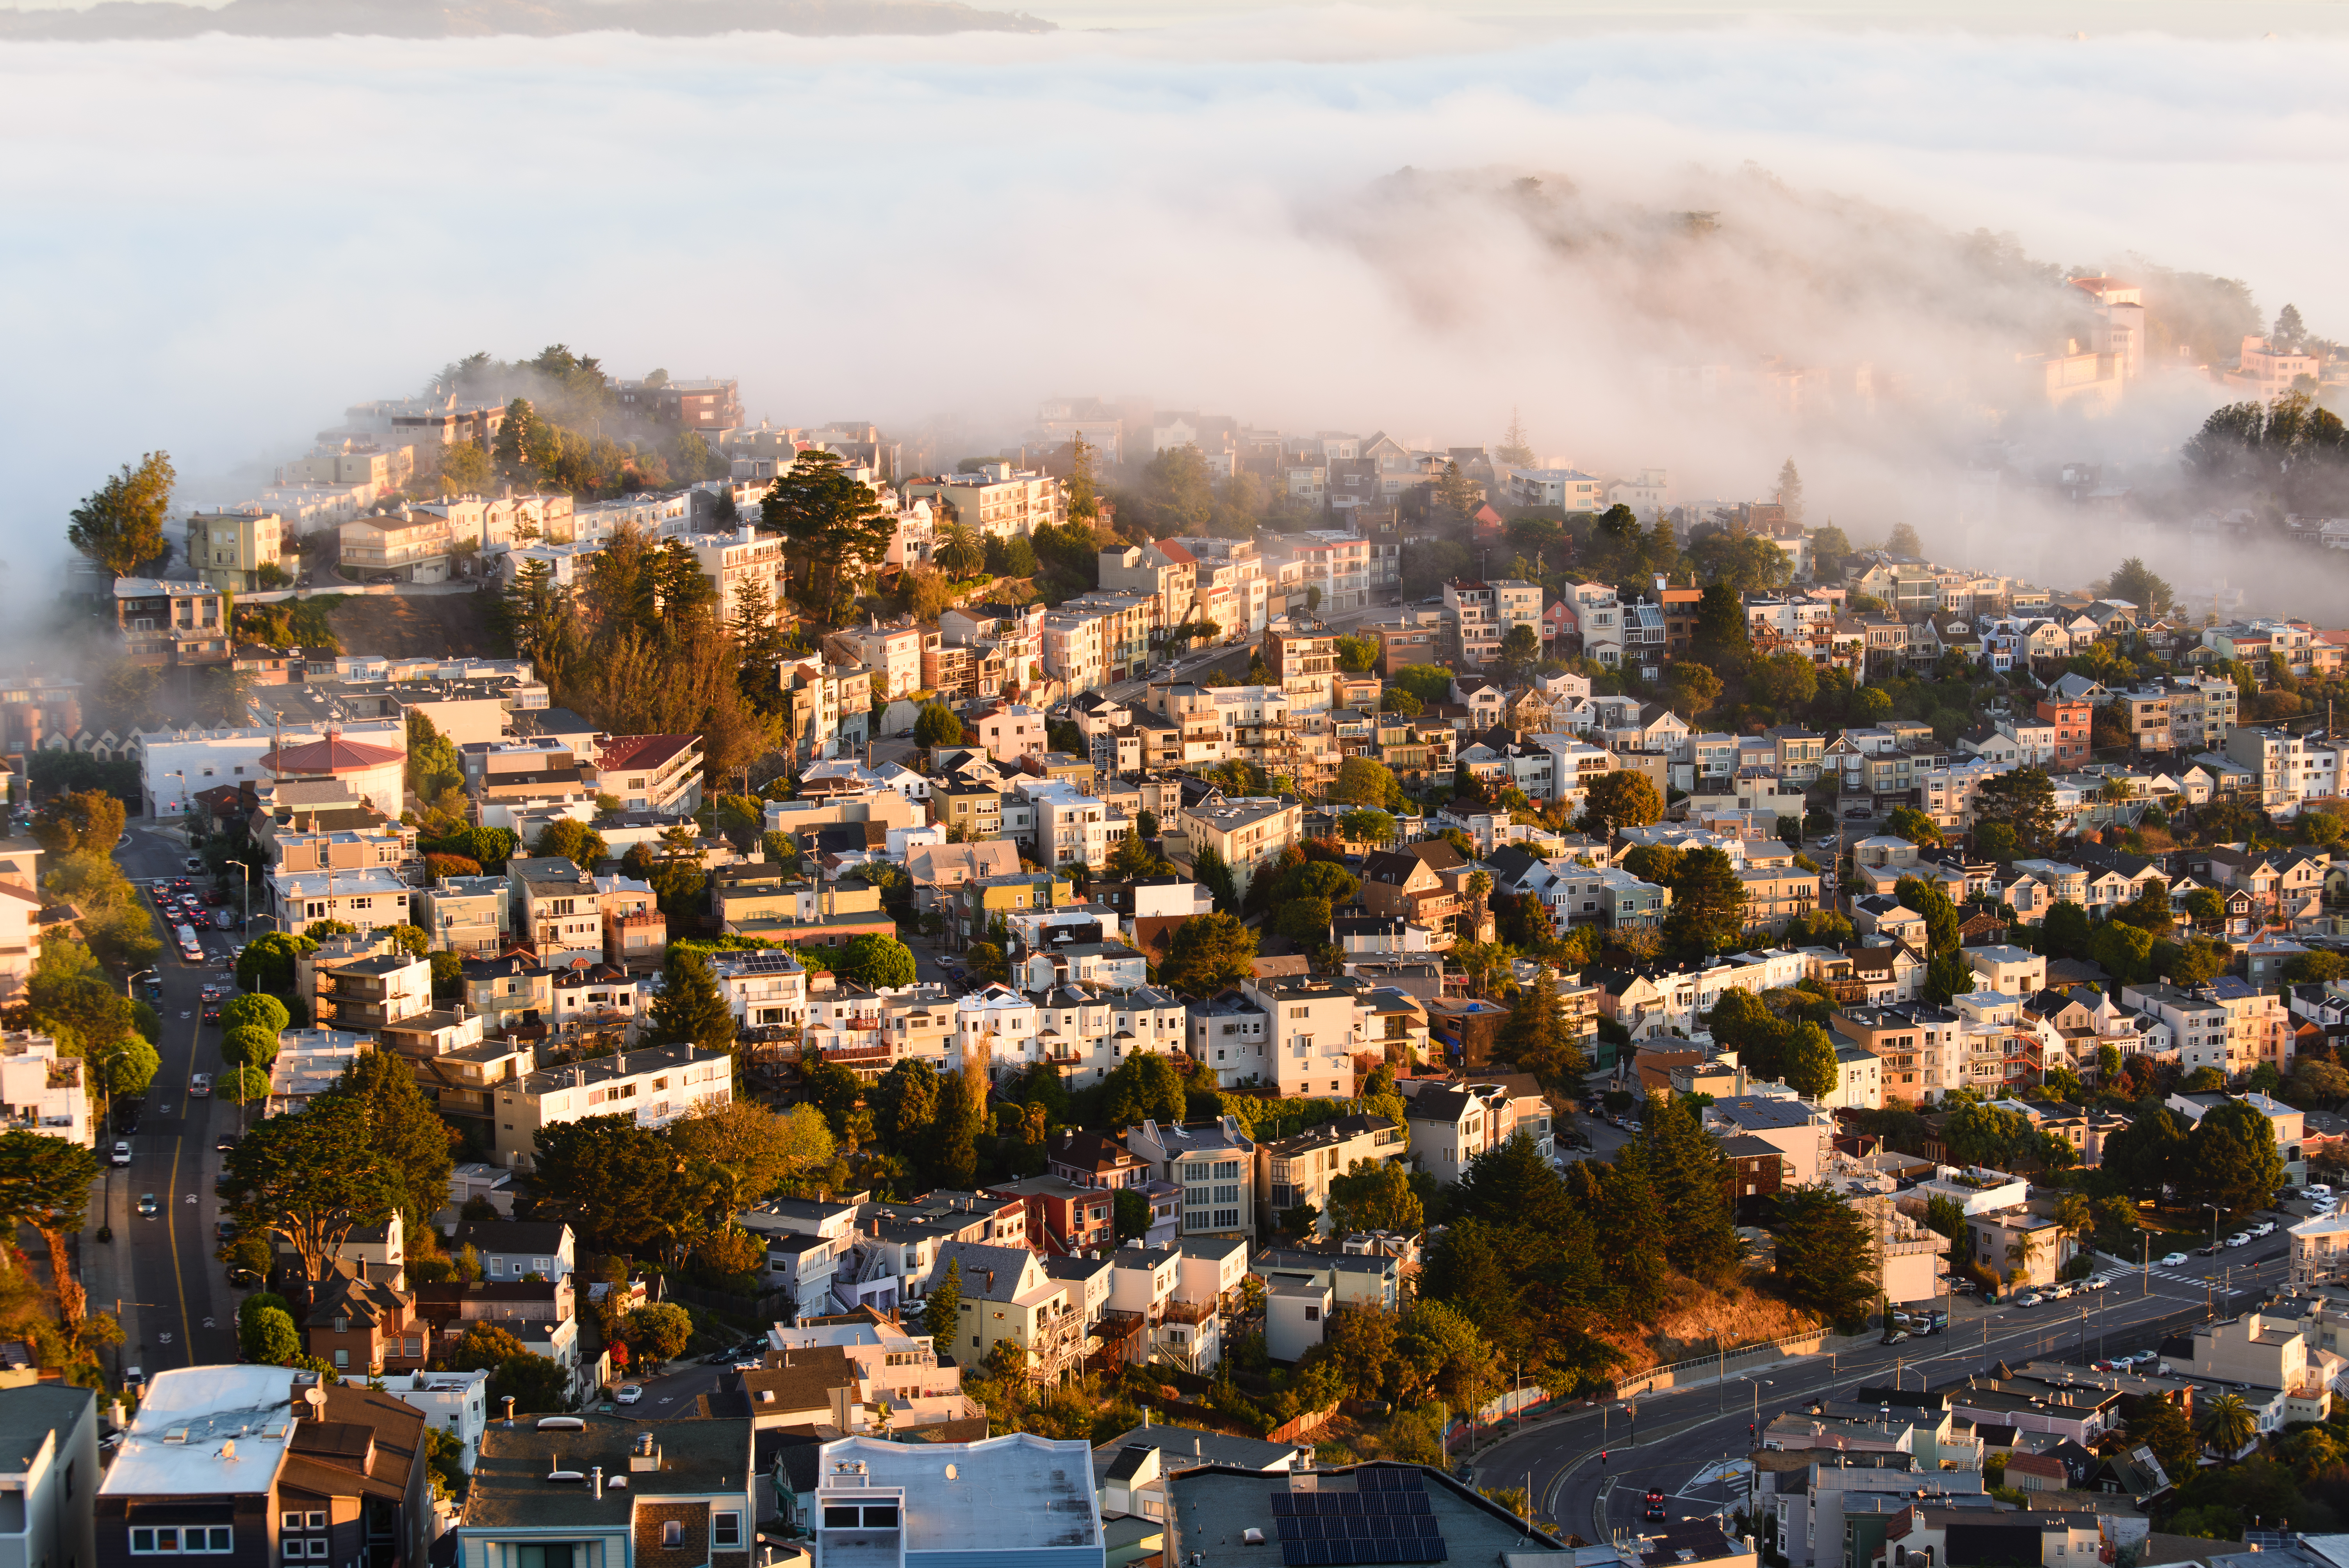 Buildings in San francisco in the morning with misty and cloudy shooting from two peaks.